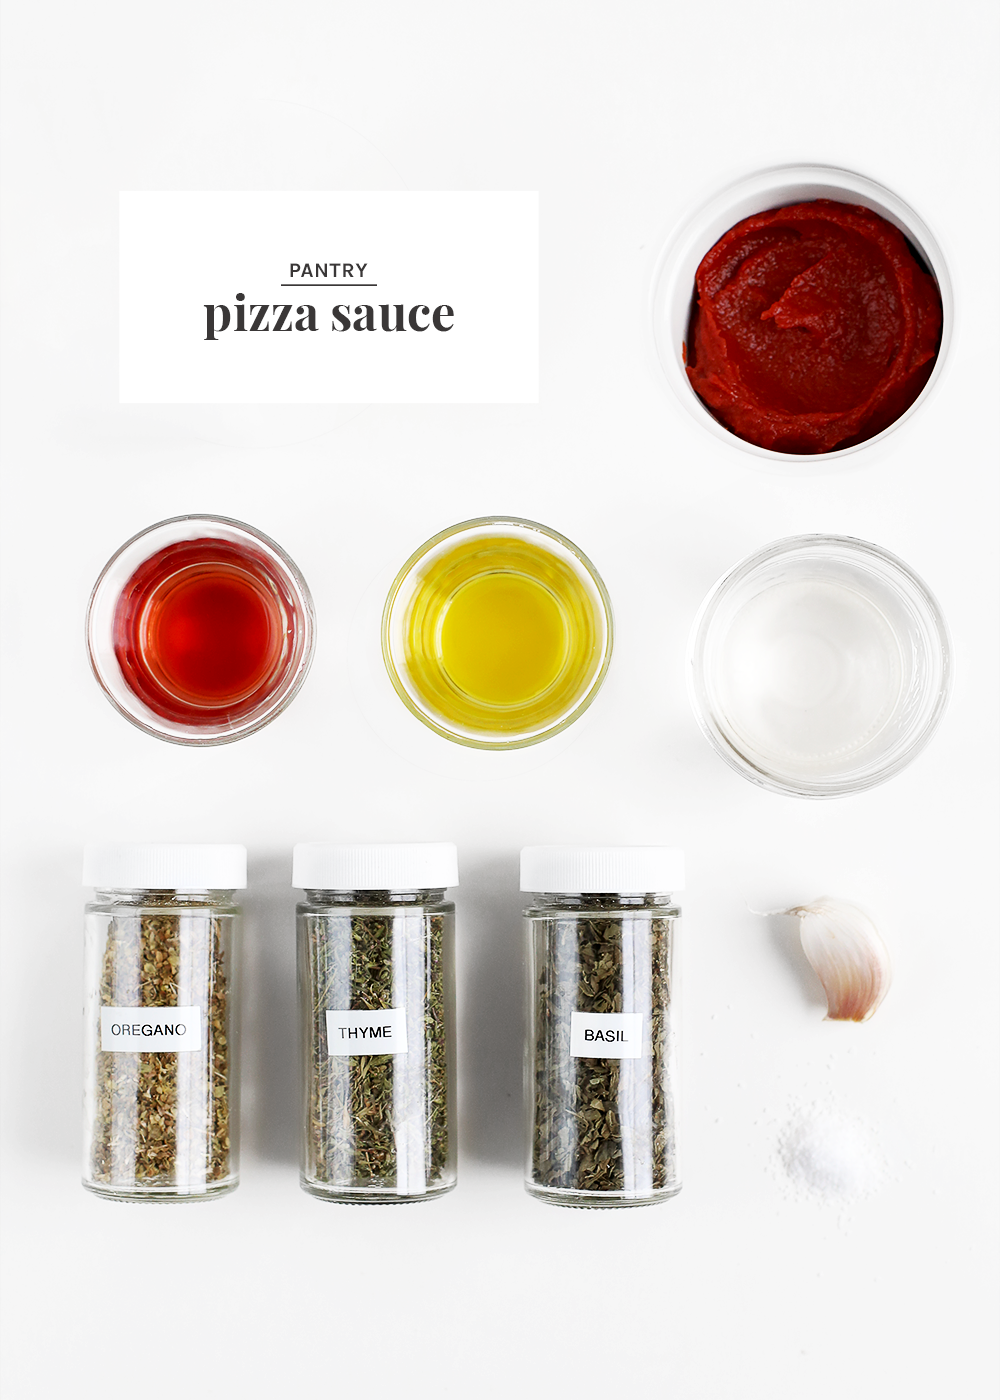 Pantry pizza sauce from The Fauxmartha